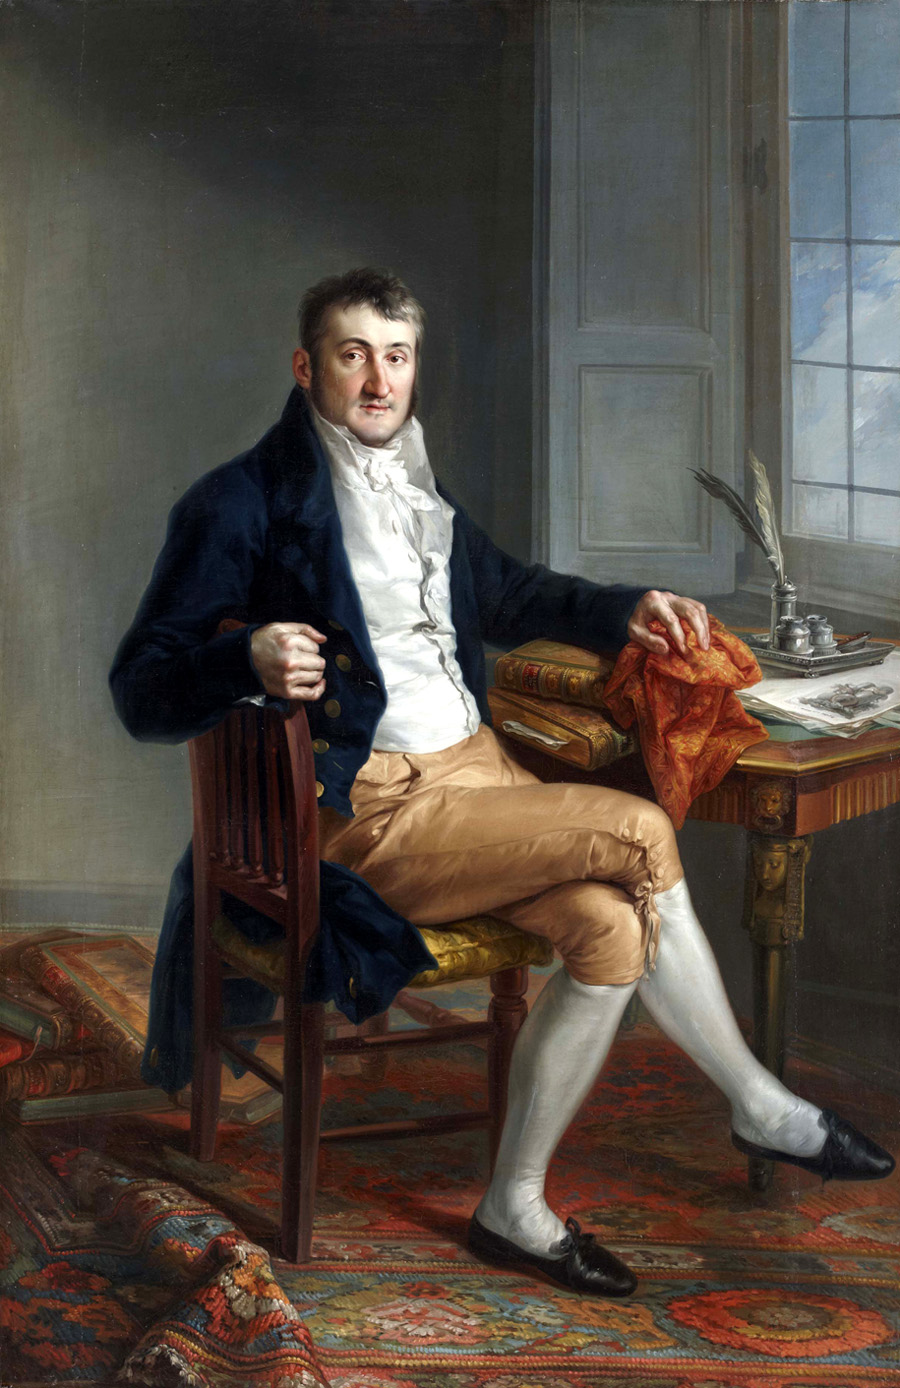 Portrait of Richard Worsam Meade by Vicente Lopez y Portana, 1815, courtesy of SMU's Meadows Museum